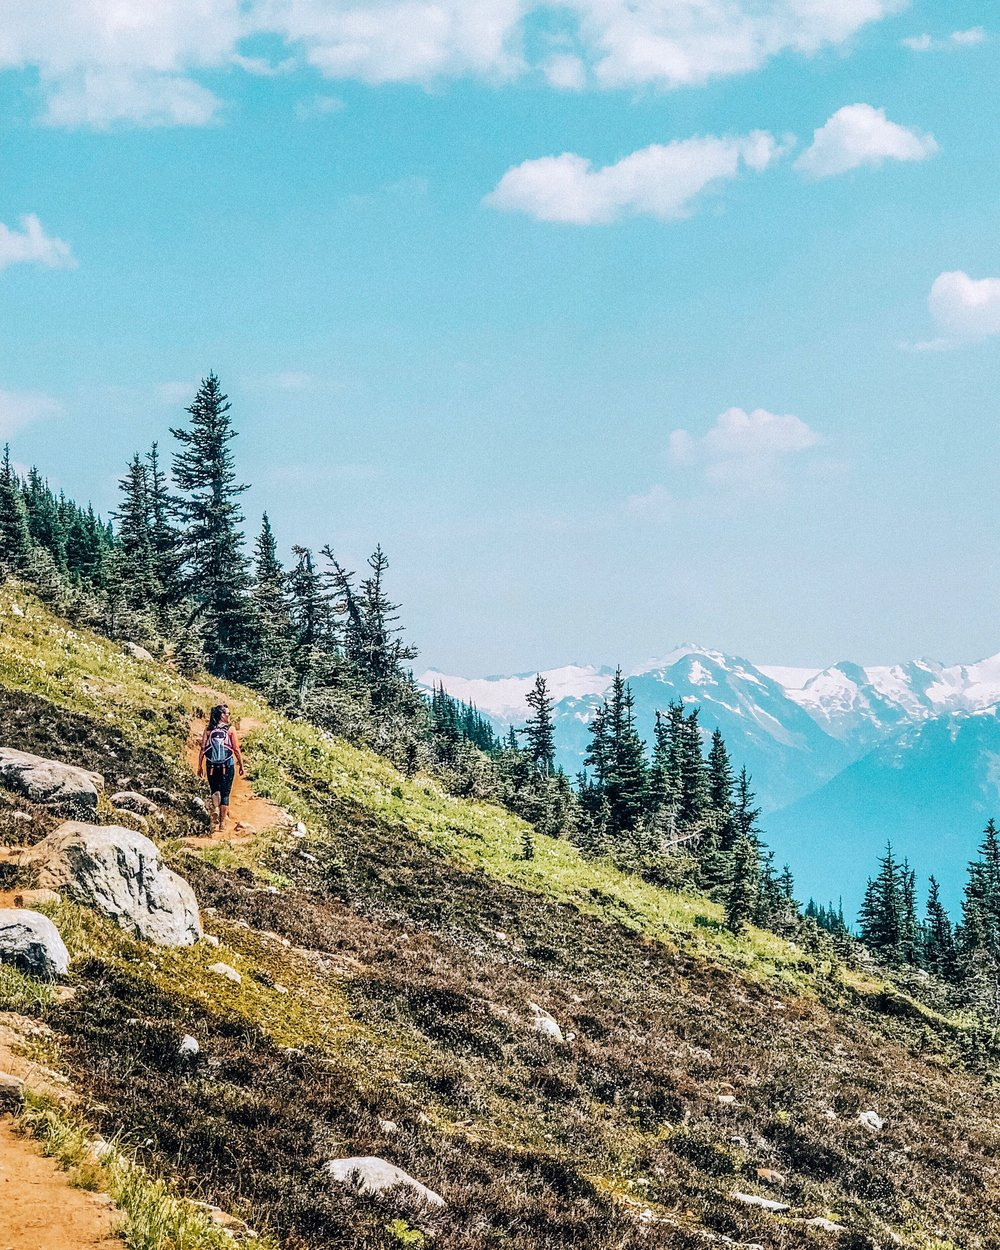 Alpine meadows and wildflowers on Whistler mountain